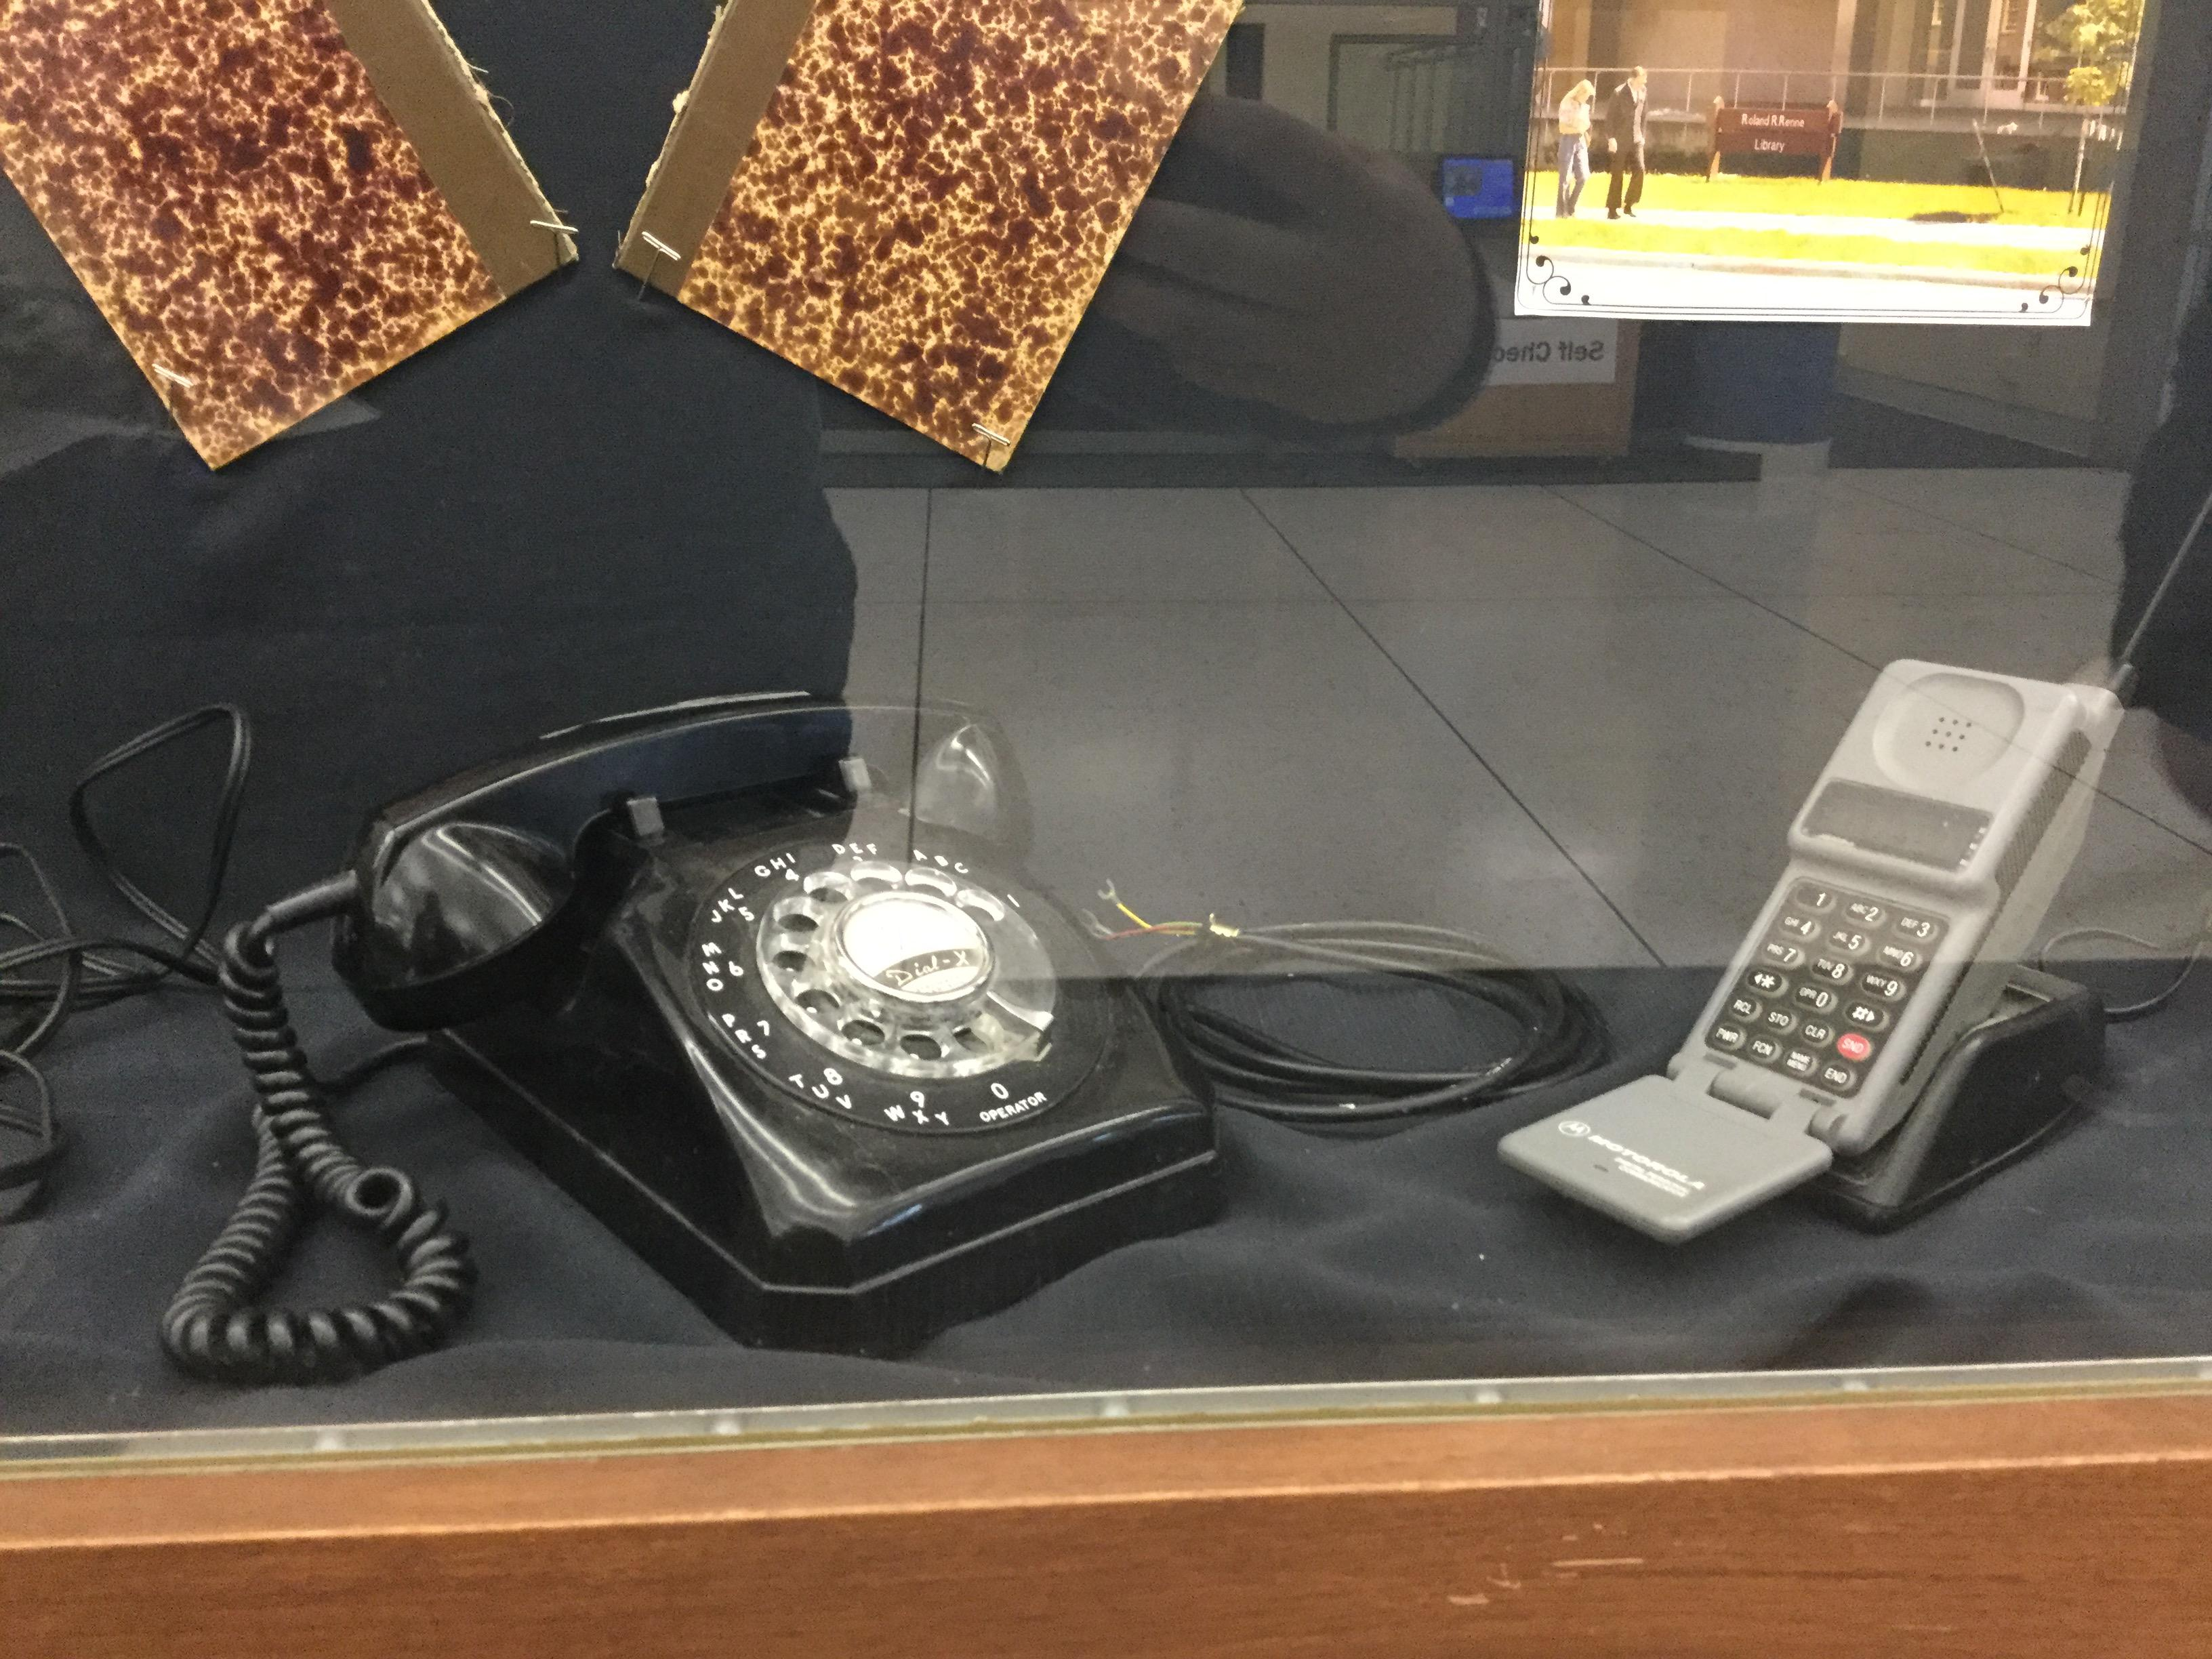 Picture close up of the telephones from the People and Technology Display